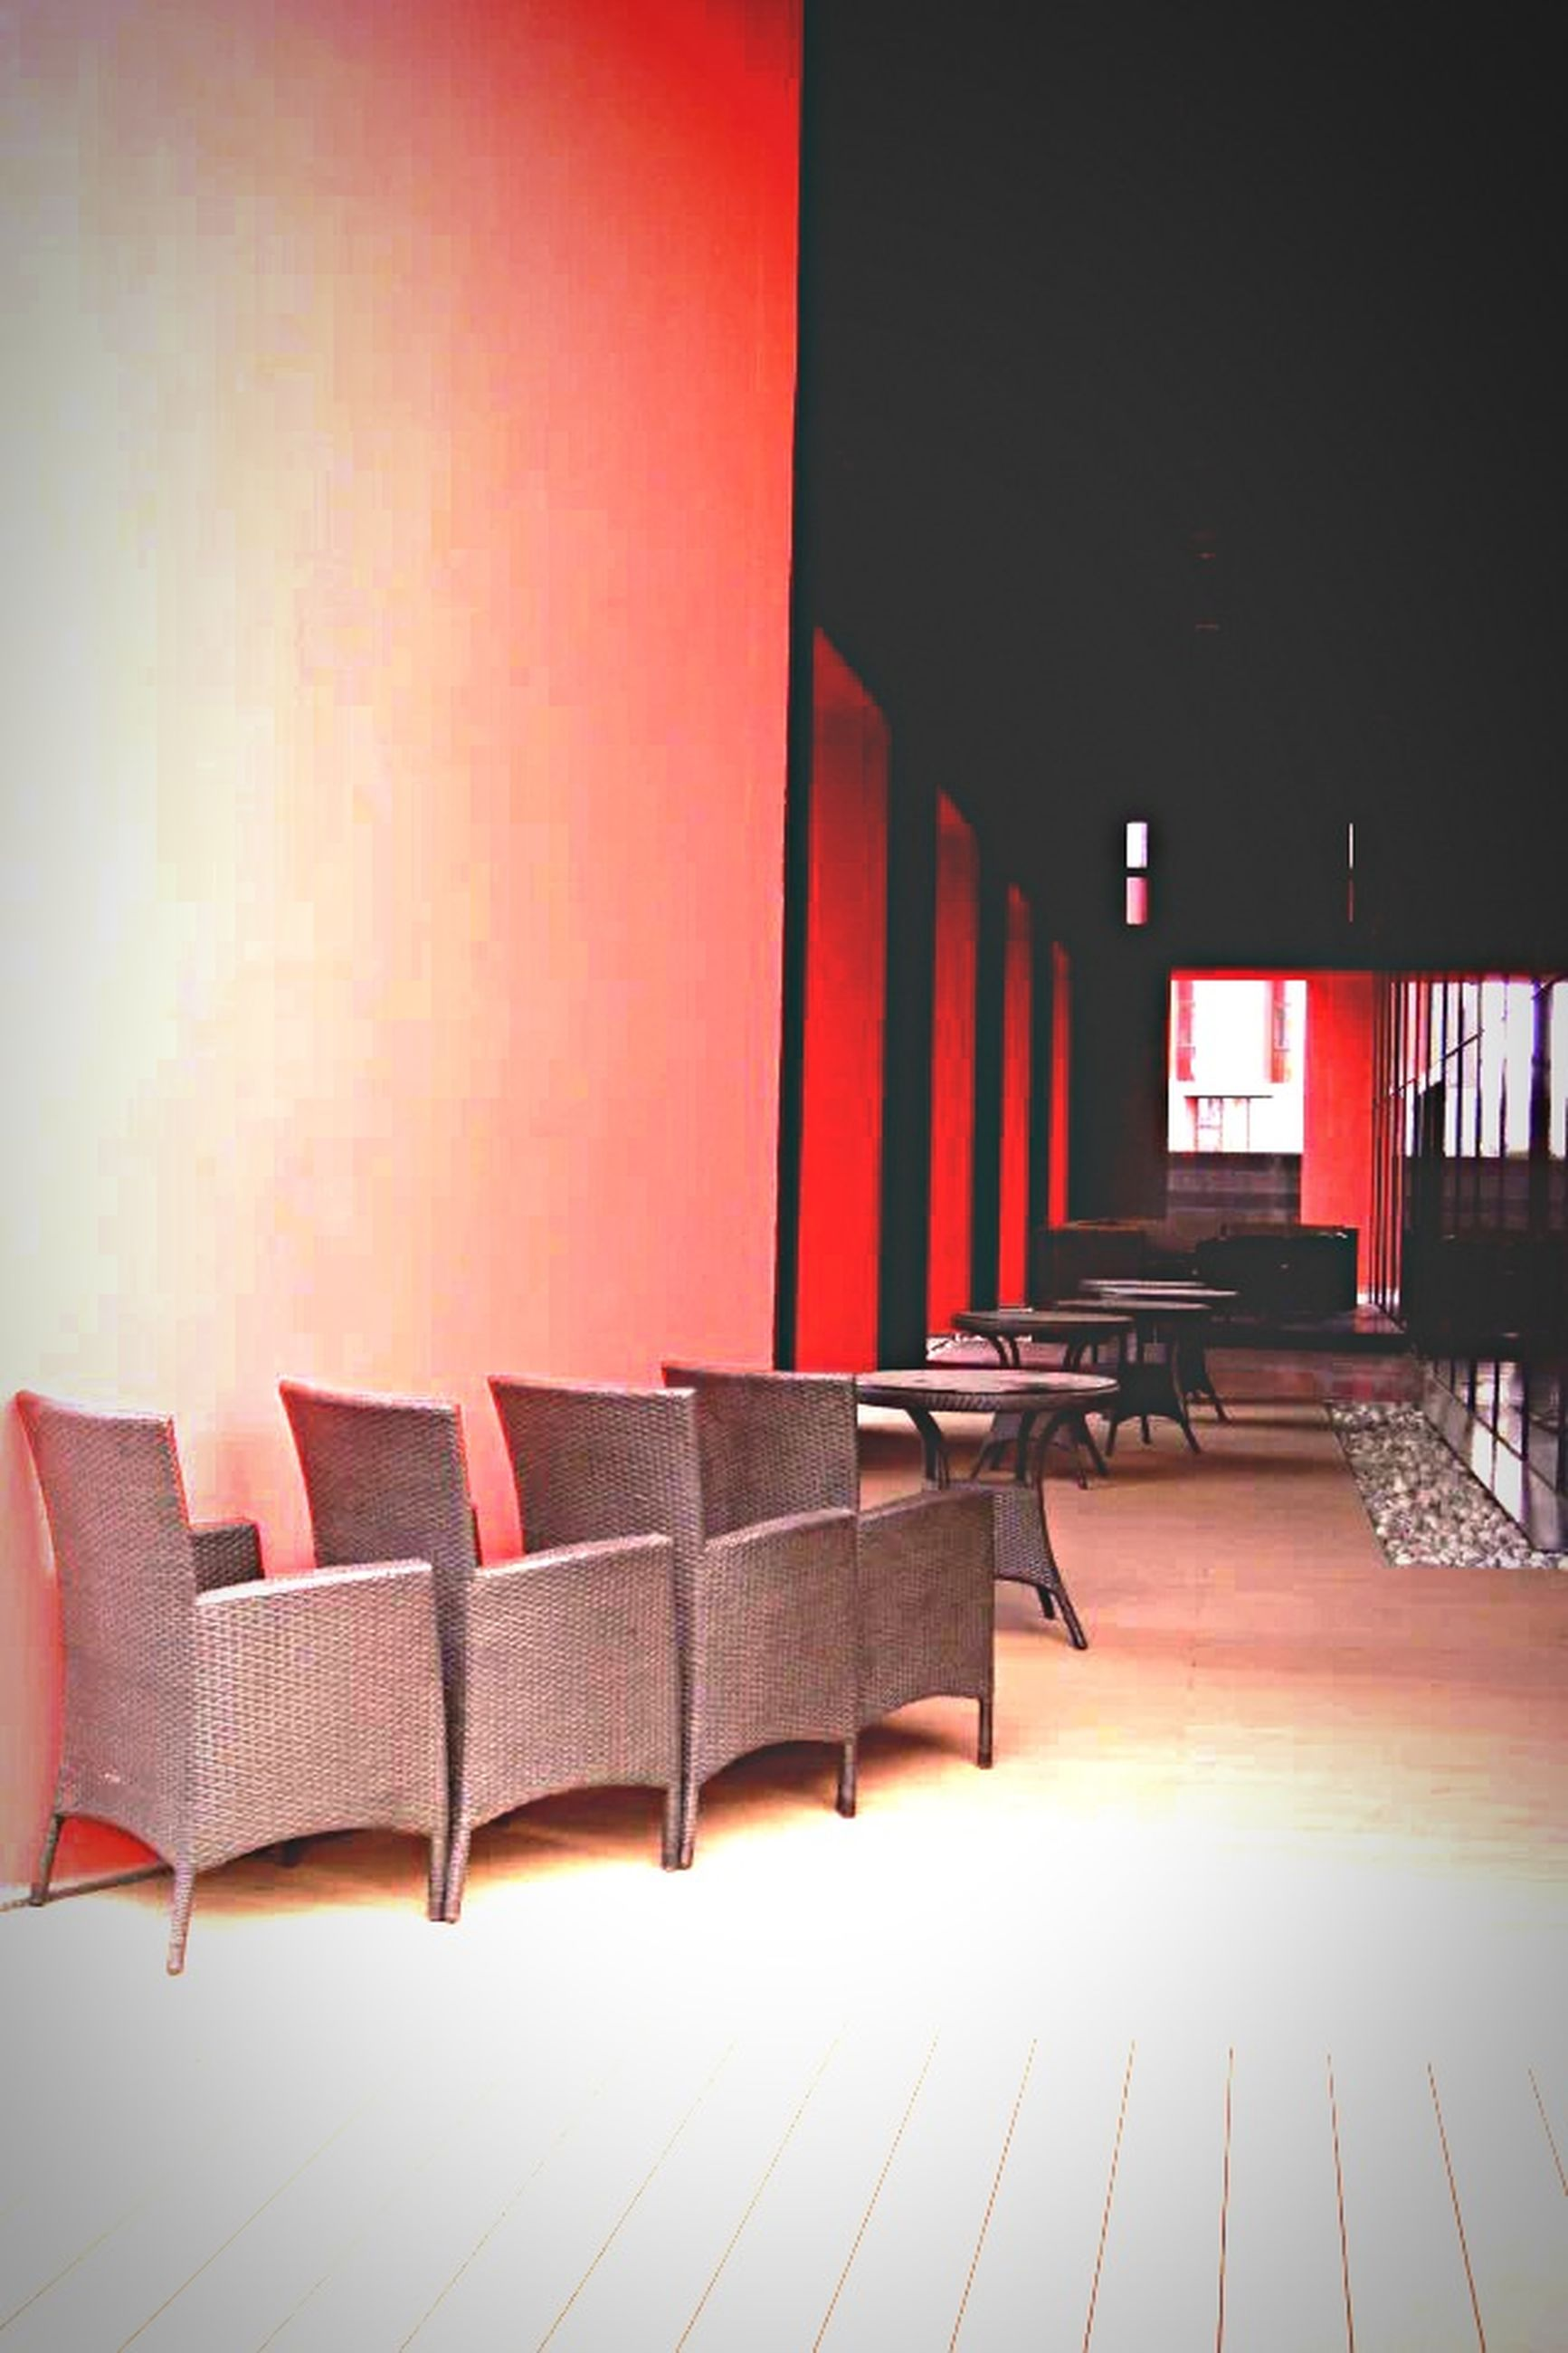 indoors, built structure, architecture, empty, chair, absence, in a row, wall - building feature, sunlight, no people, house, wall, flooring, shadow, furniture, seat, red, day, corridor, railing